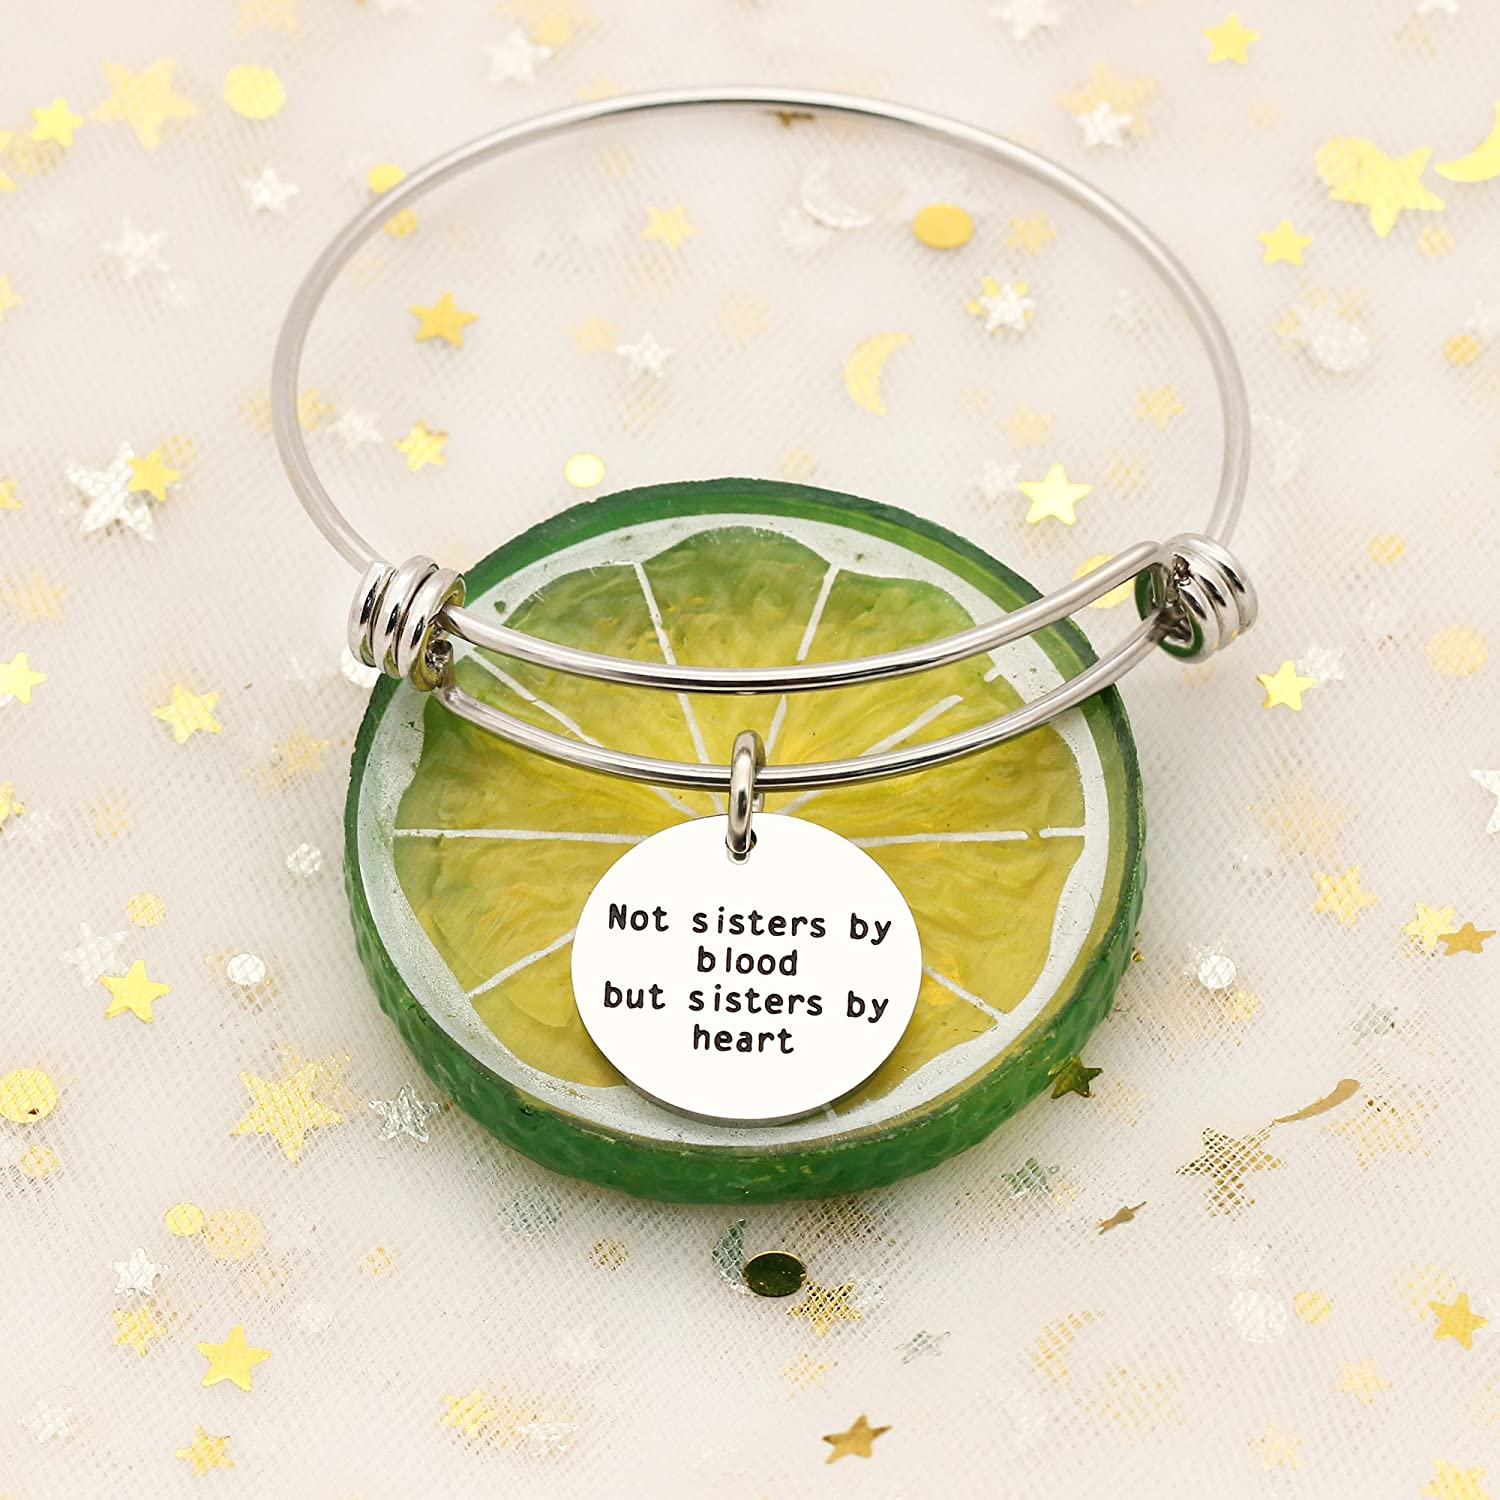 AGR8T Bangle Bracelets Inspirational Friend Jewelry Not Sisters by Blood But Sisters by Heart Bangle